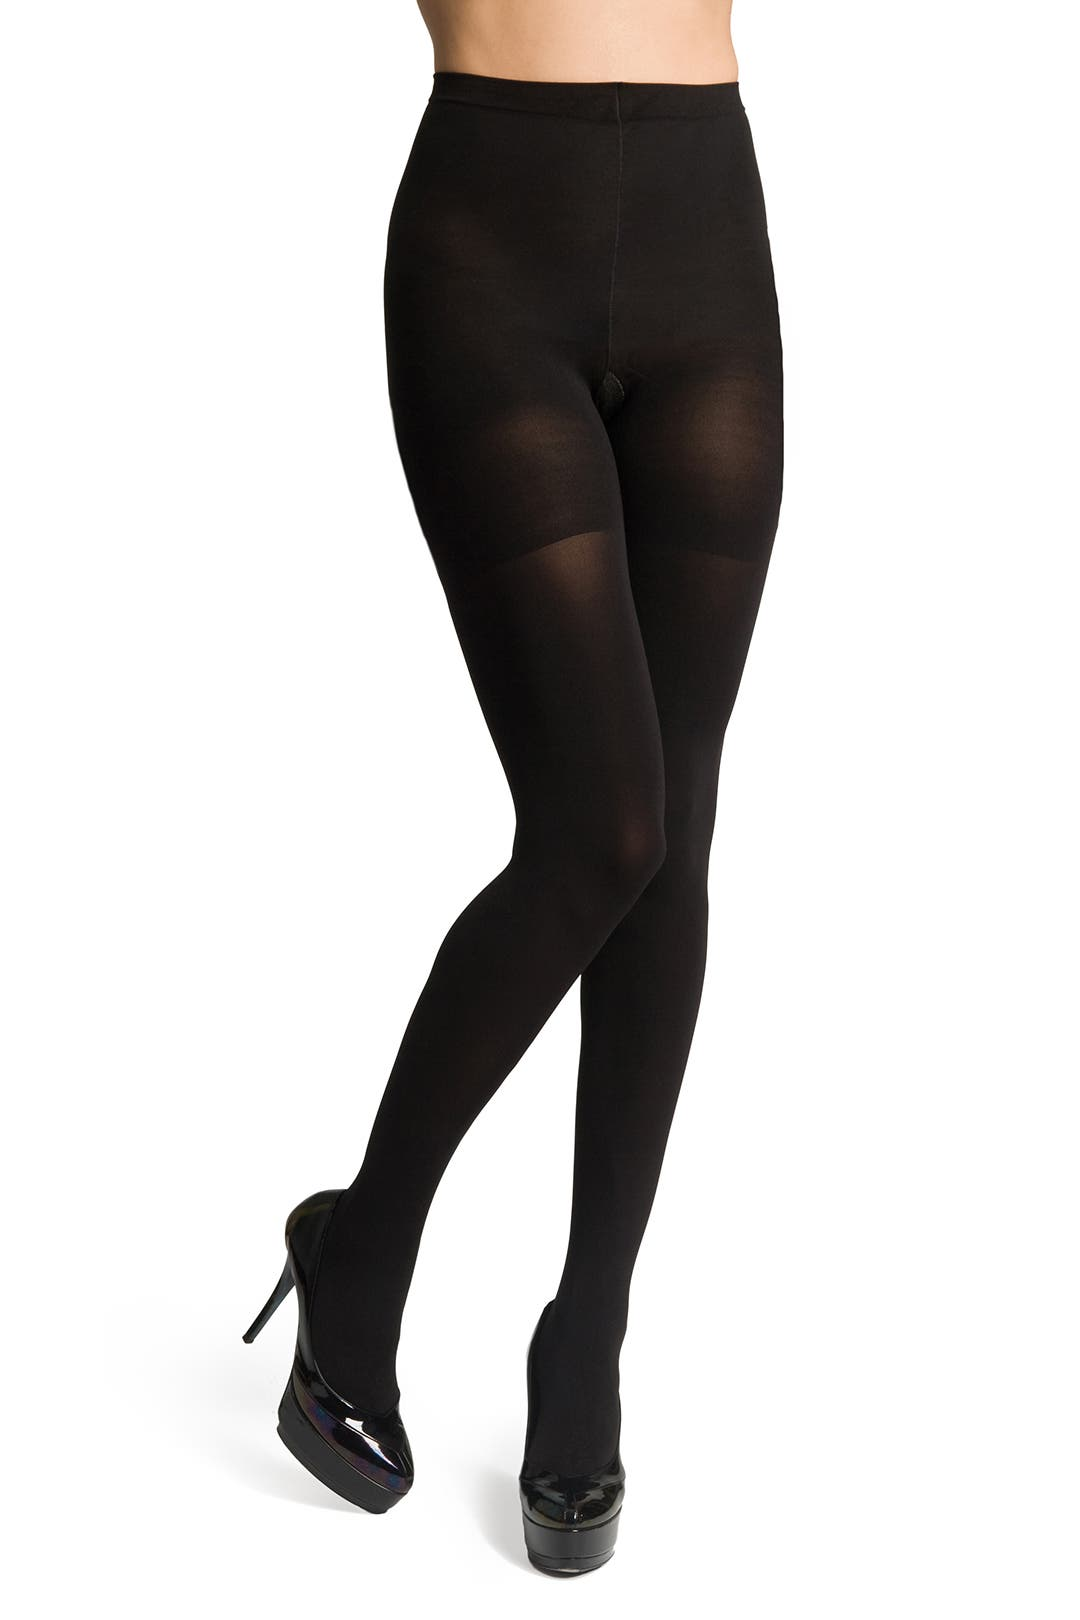 Black Tight End Tights by Spanx